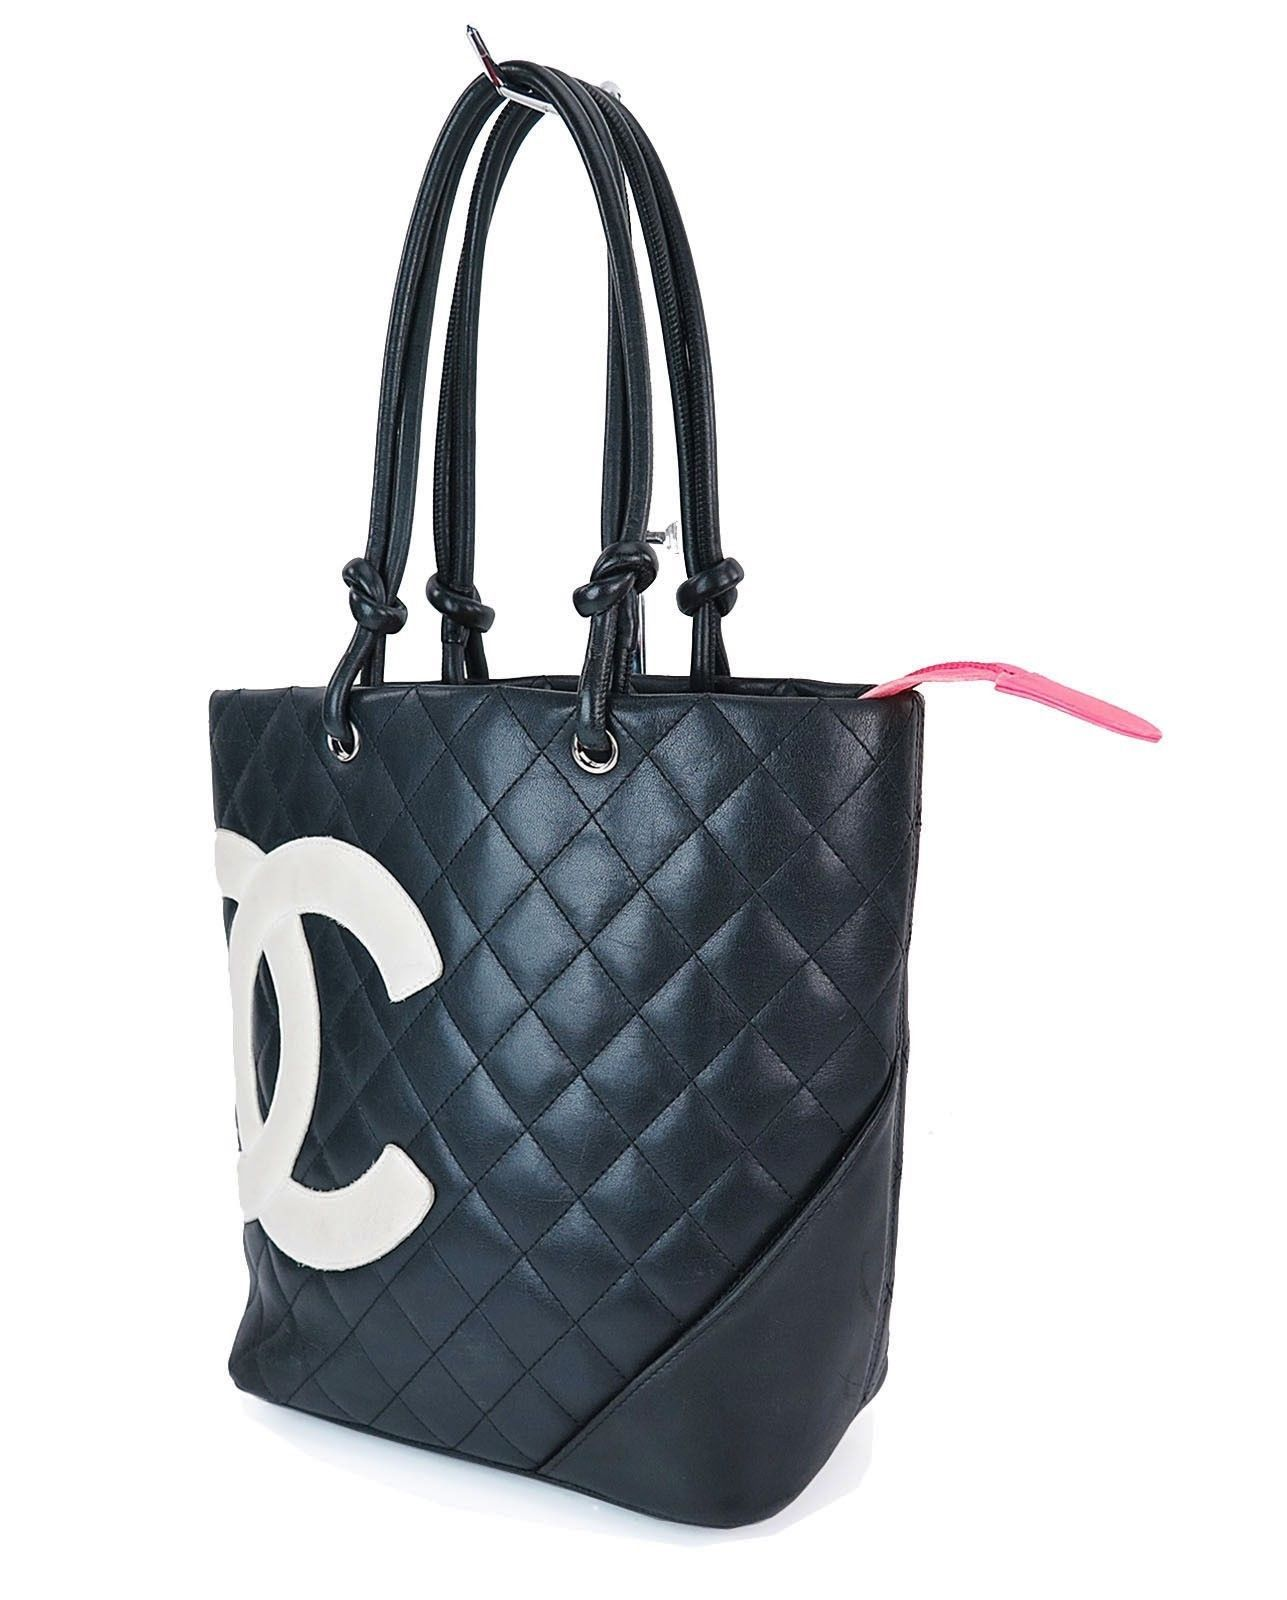 de6d5b263fe076 Quilted Black Leather Chanel Purse - New image Of Purse